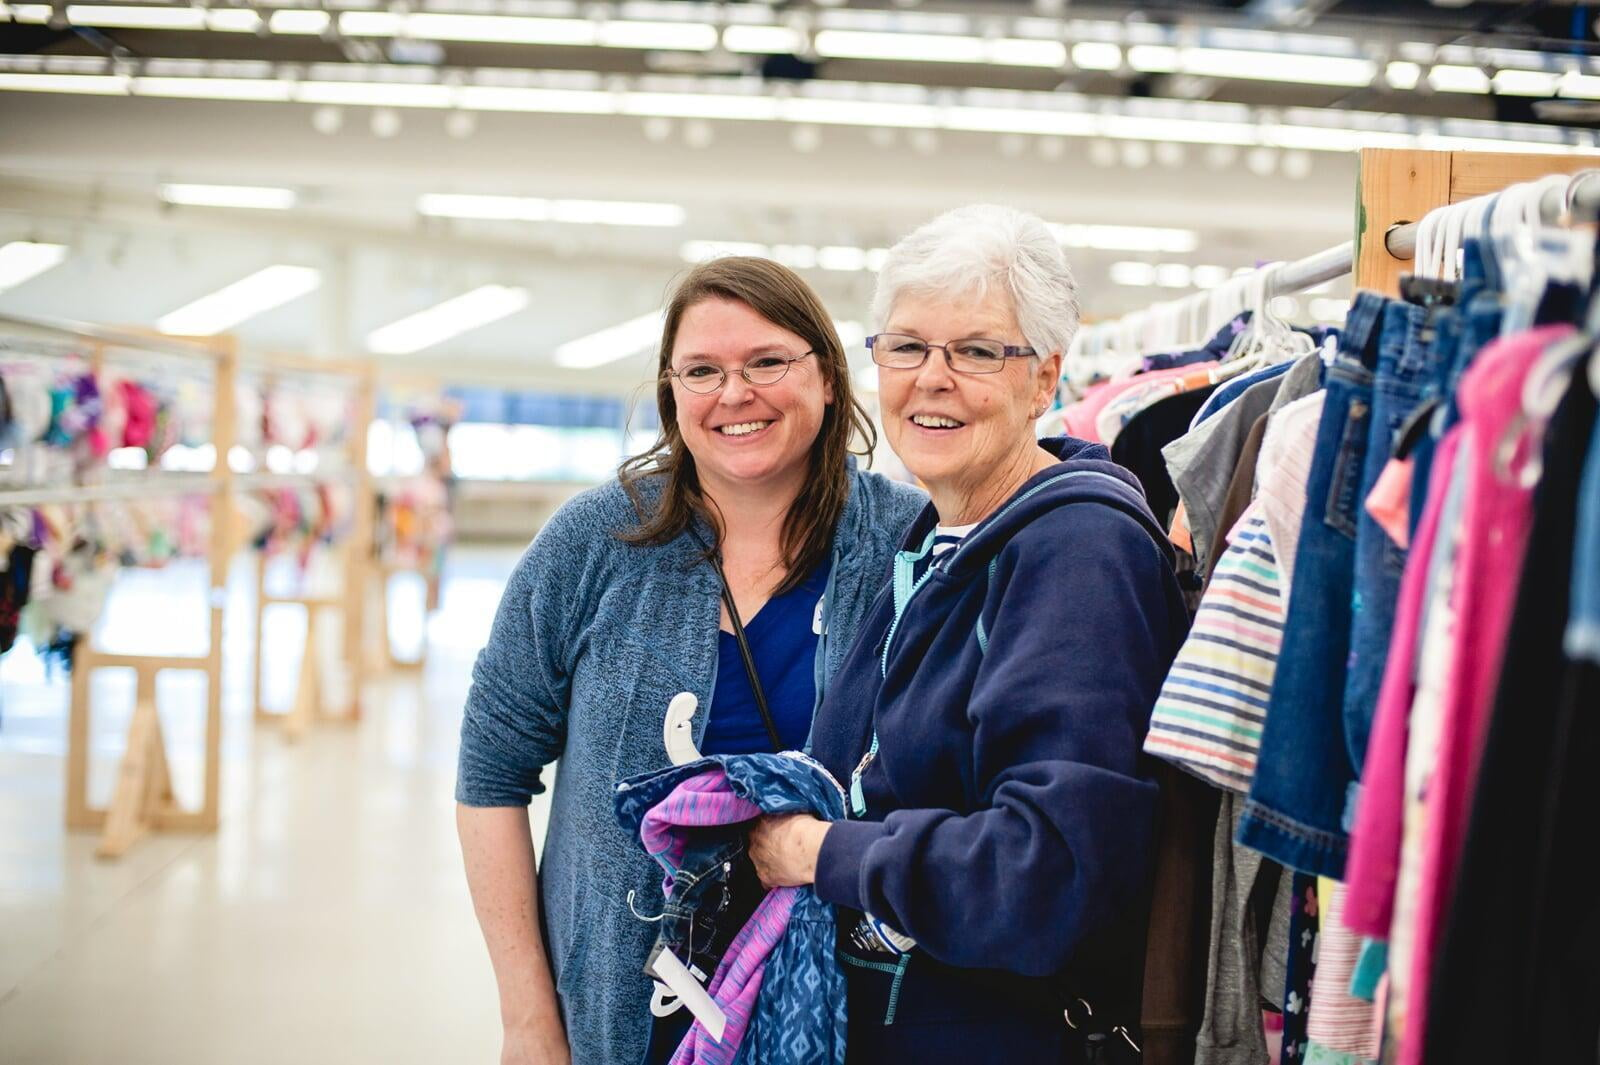 Mom and grandmother stand together, a few pieces of clothing in grandmom's hands, as they shop together for their family.